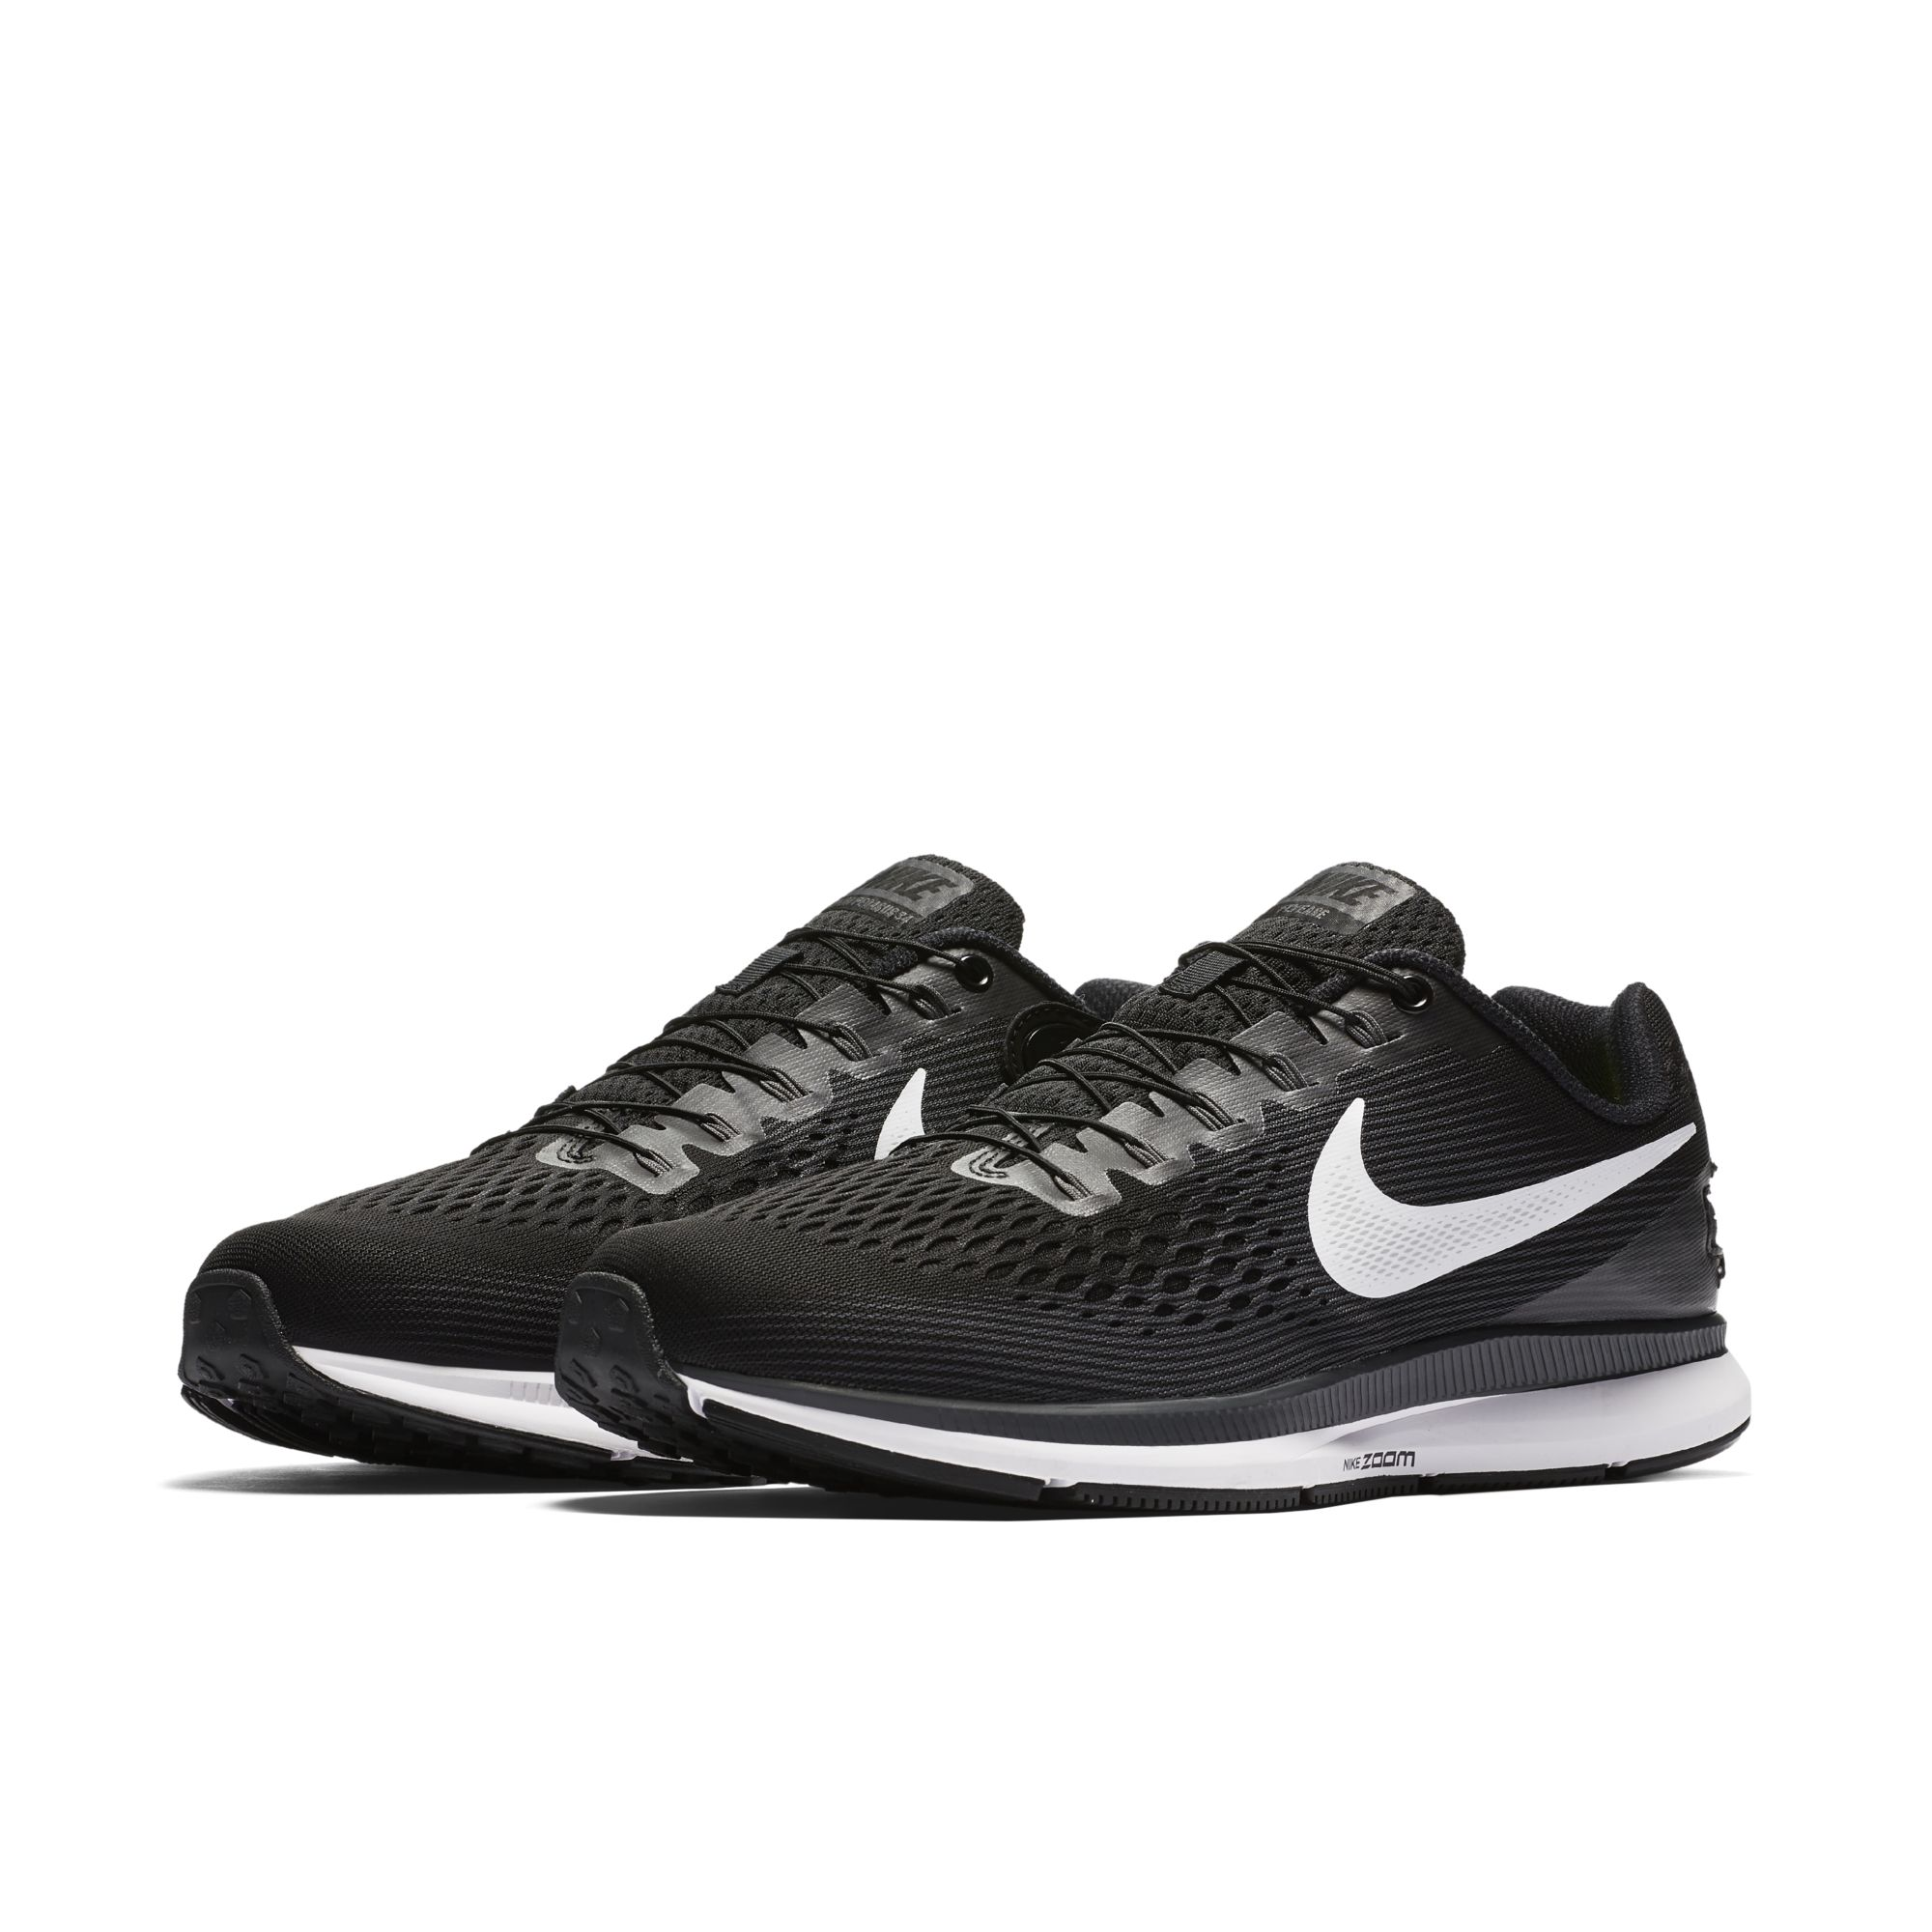 85d3e3a86048 Nike Air Zoom Pegasus 34 Flyease 5 - WearTesters